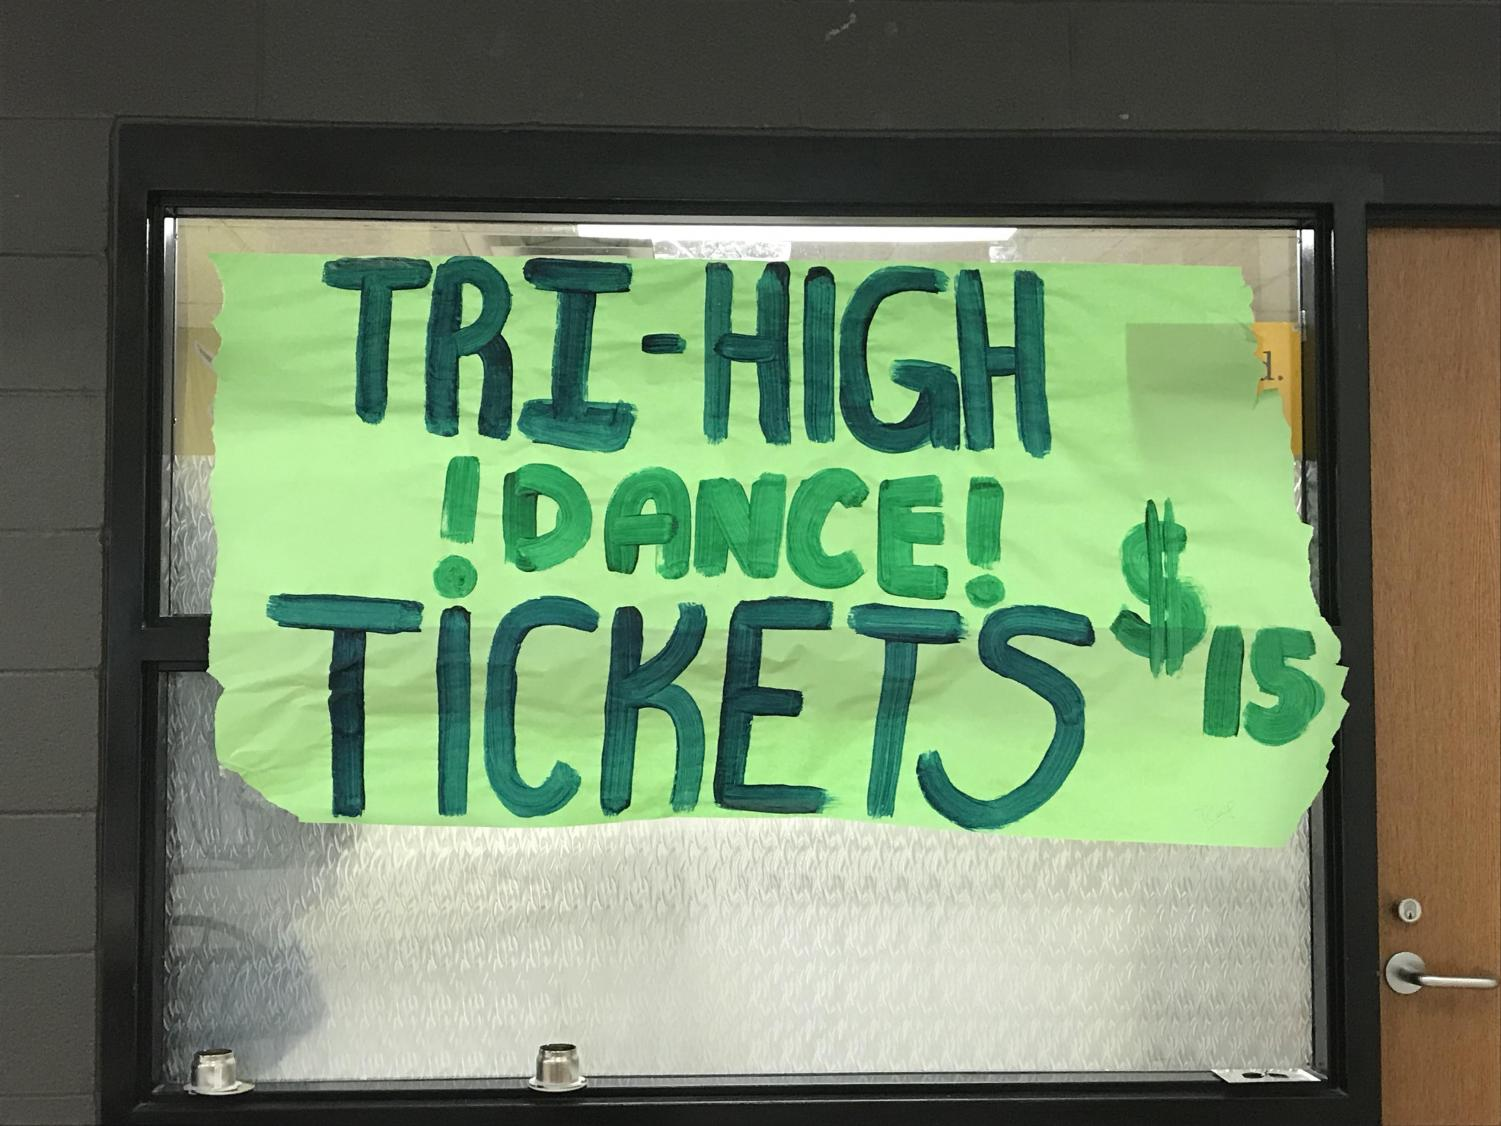 This is the last week to buy tickets for the dance. Tickets are sold in the cafeteria during lunch.